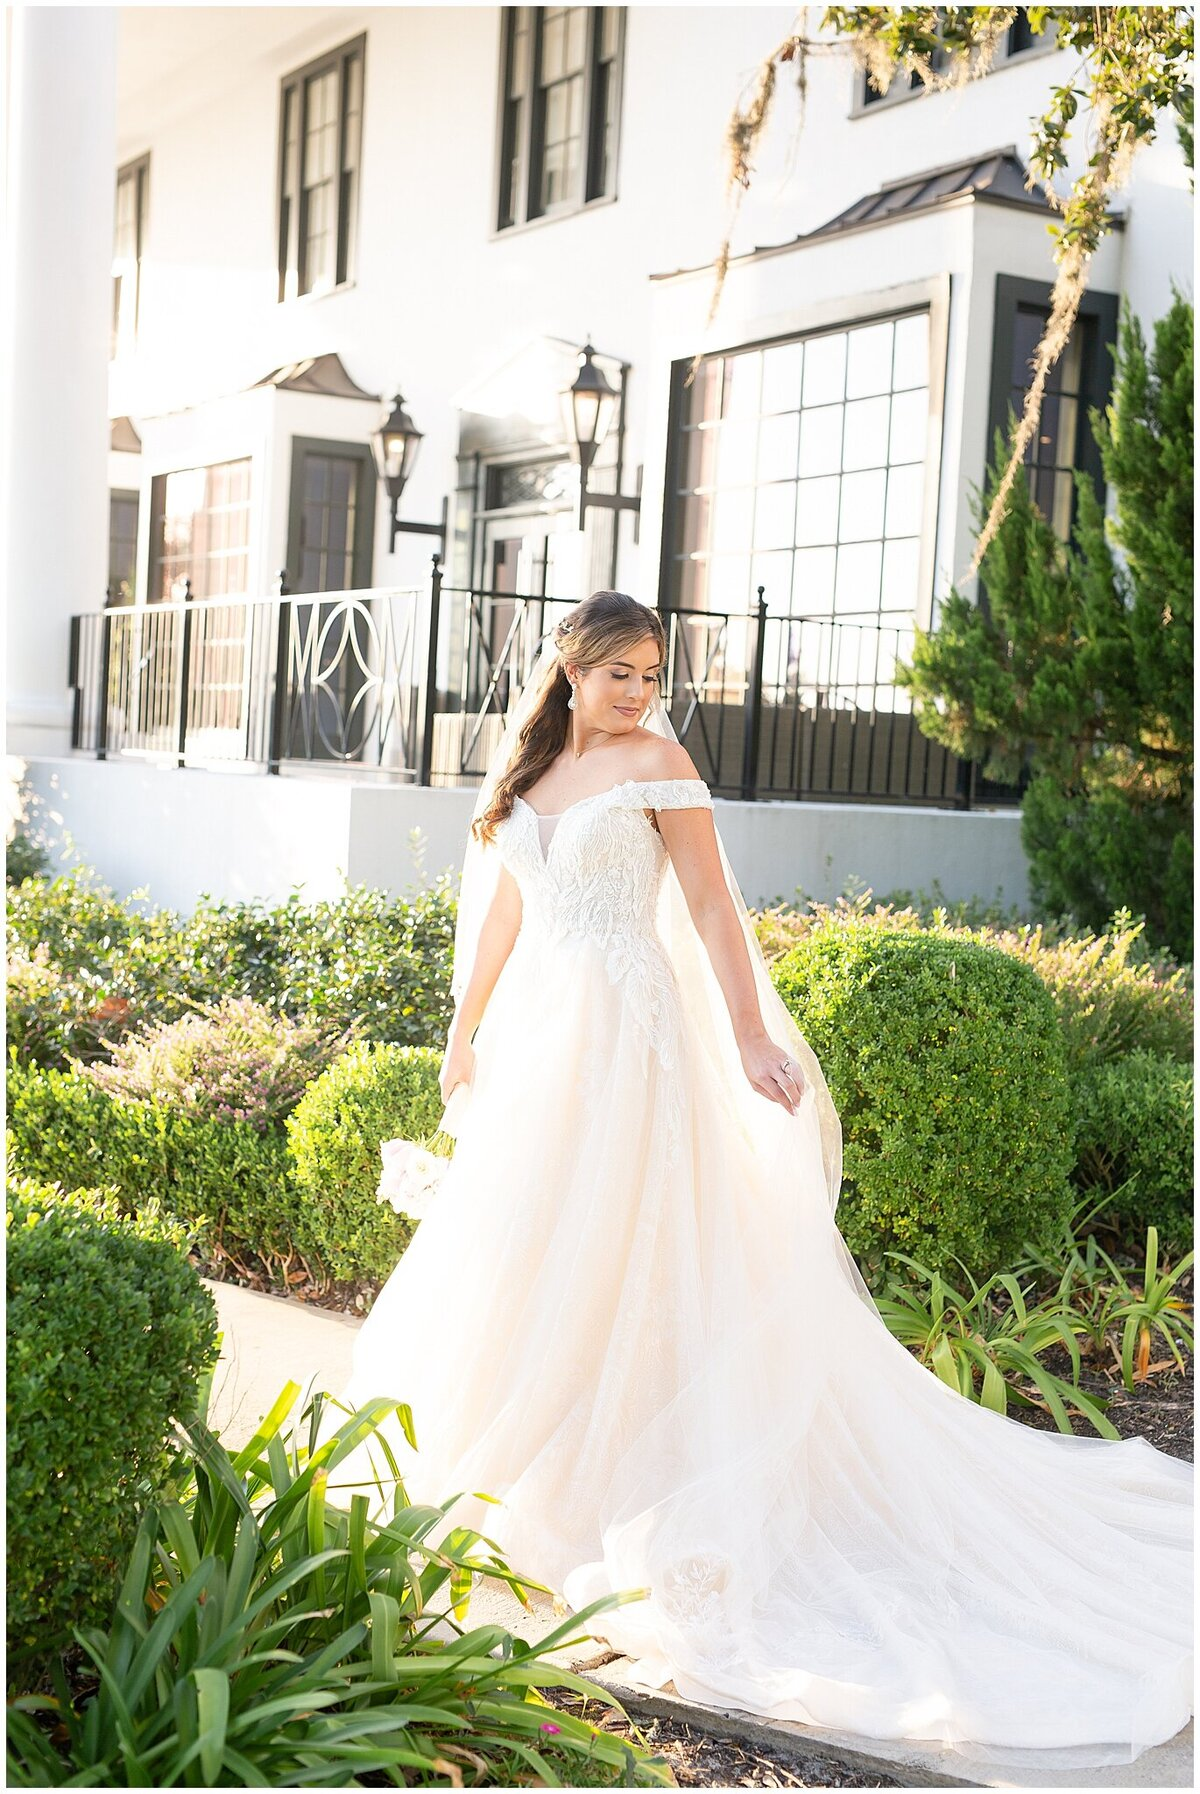 Bridal-Wedding-PortraitsThe-White-House-Hotel-Biloxi1231